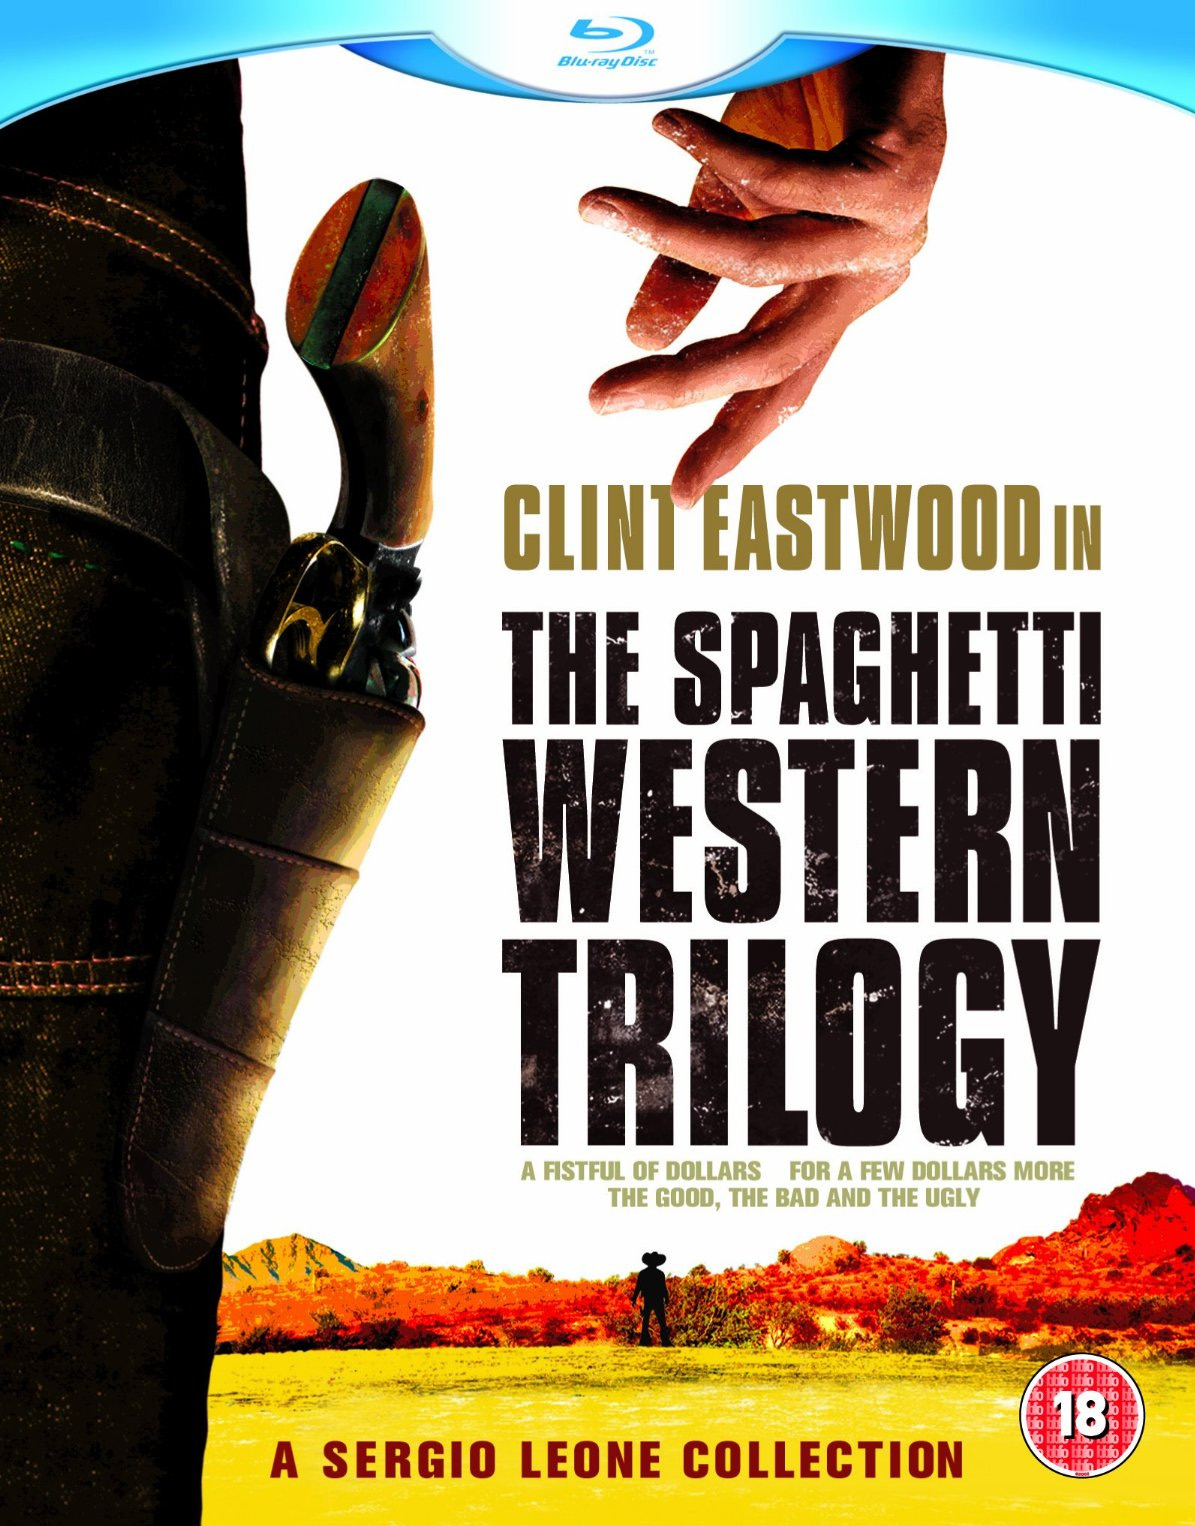 spaghetti western collection bluray available for pre